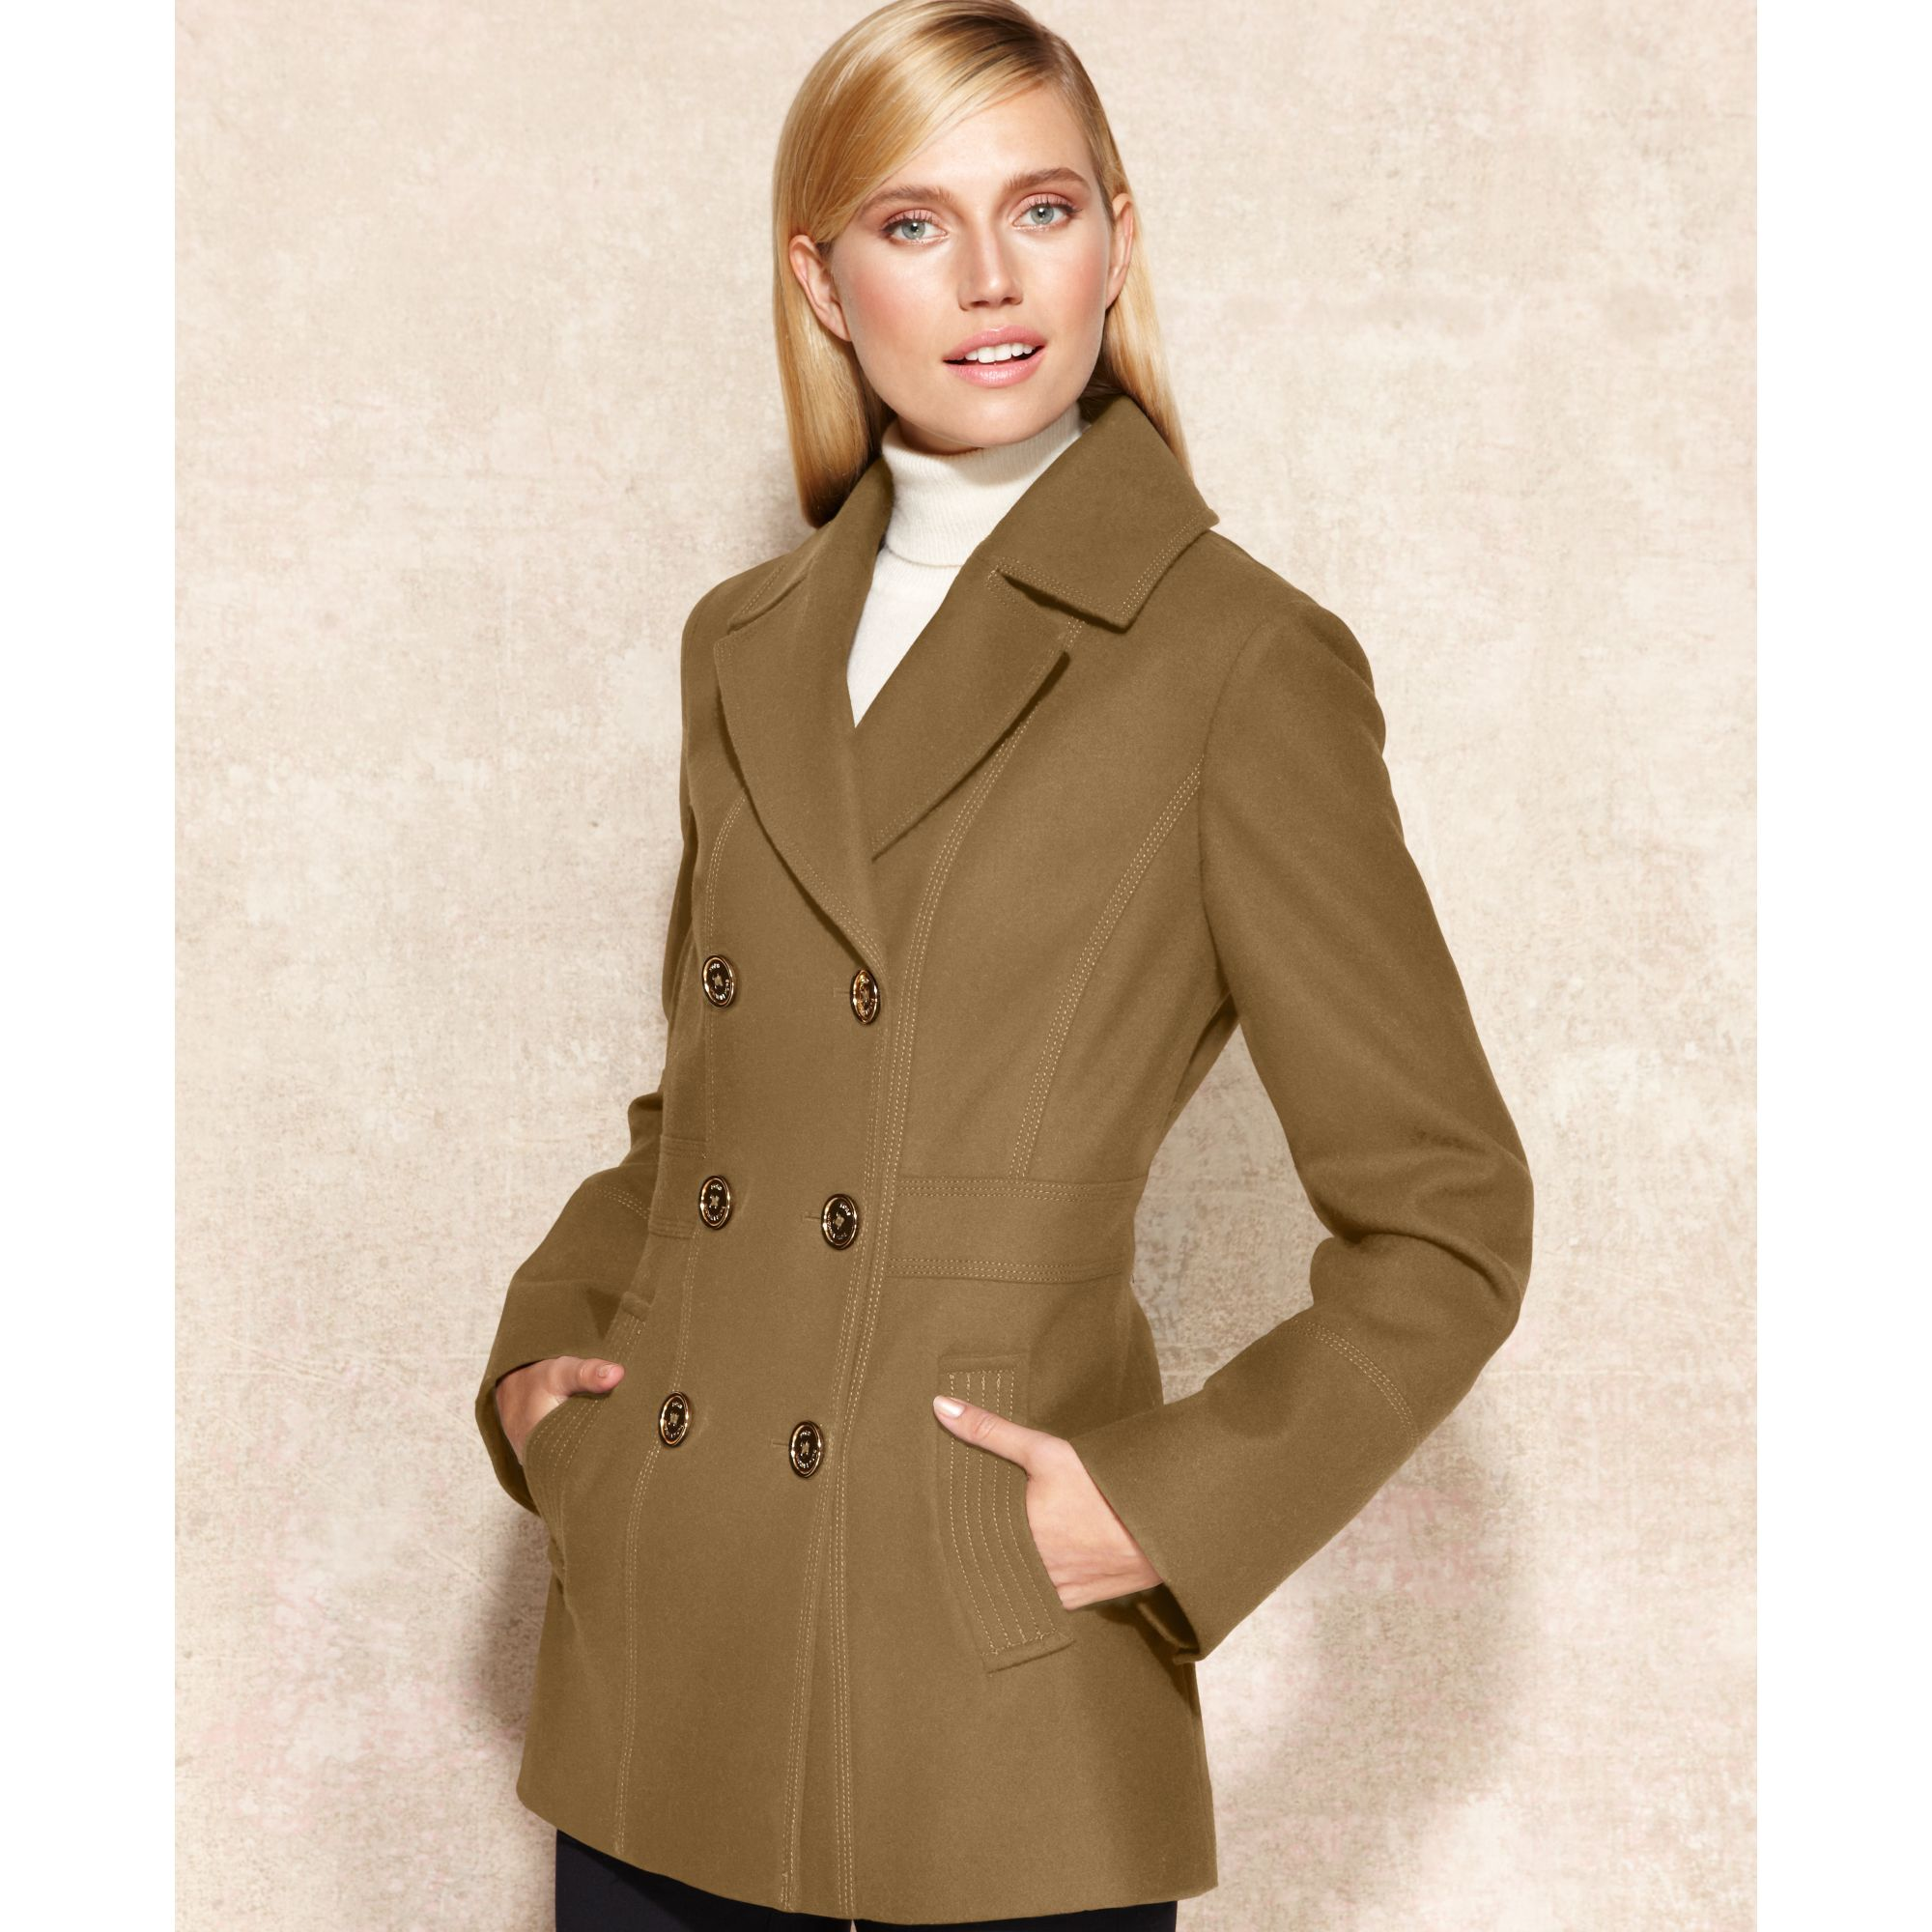 Michael kors Double-breasted Wool-blend Pea Coat in Natural | Lyst